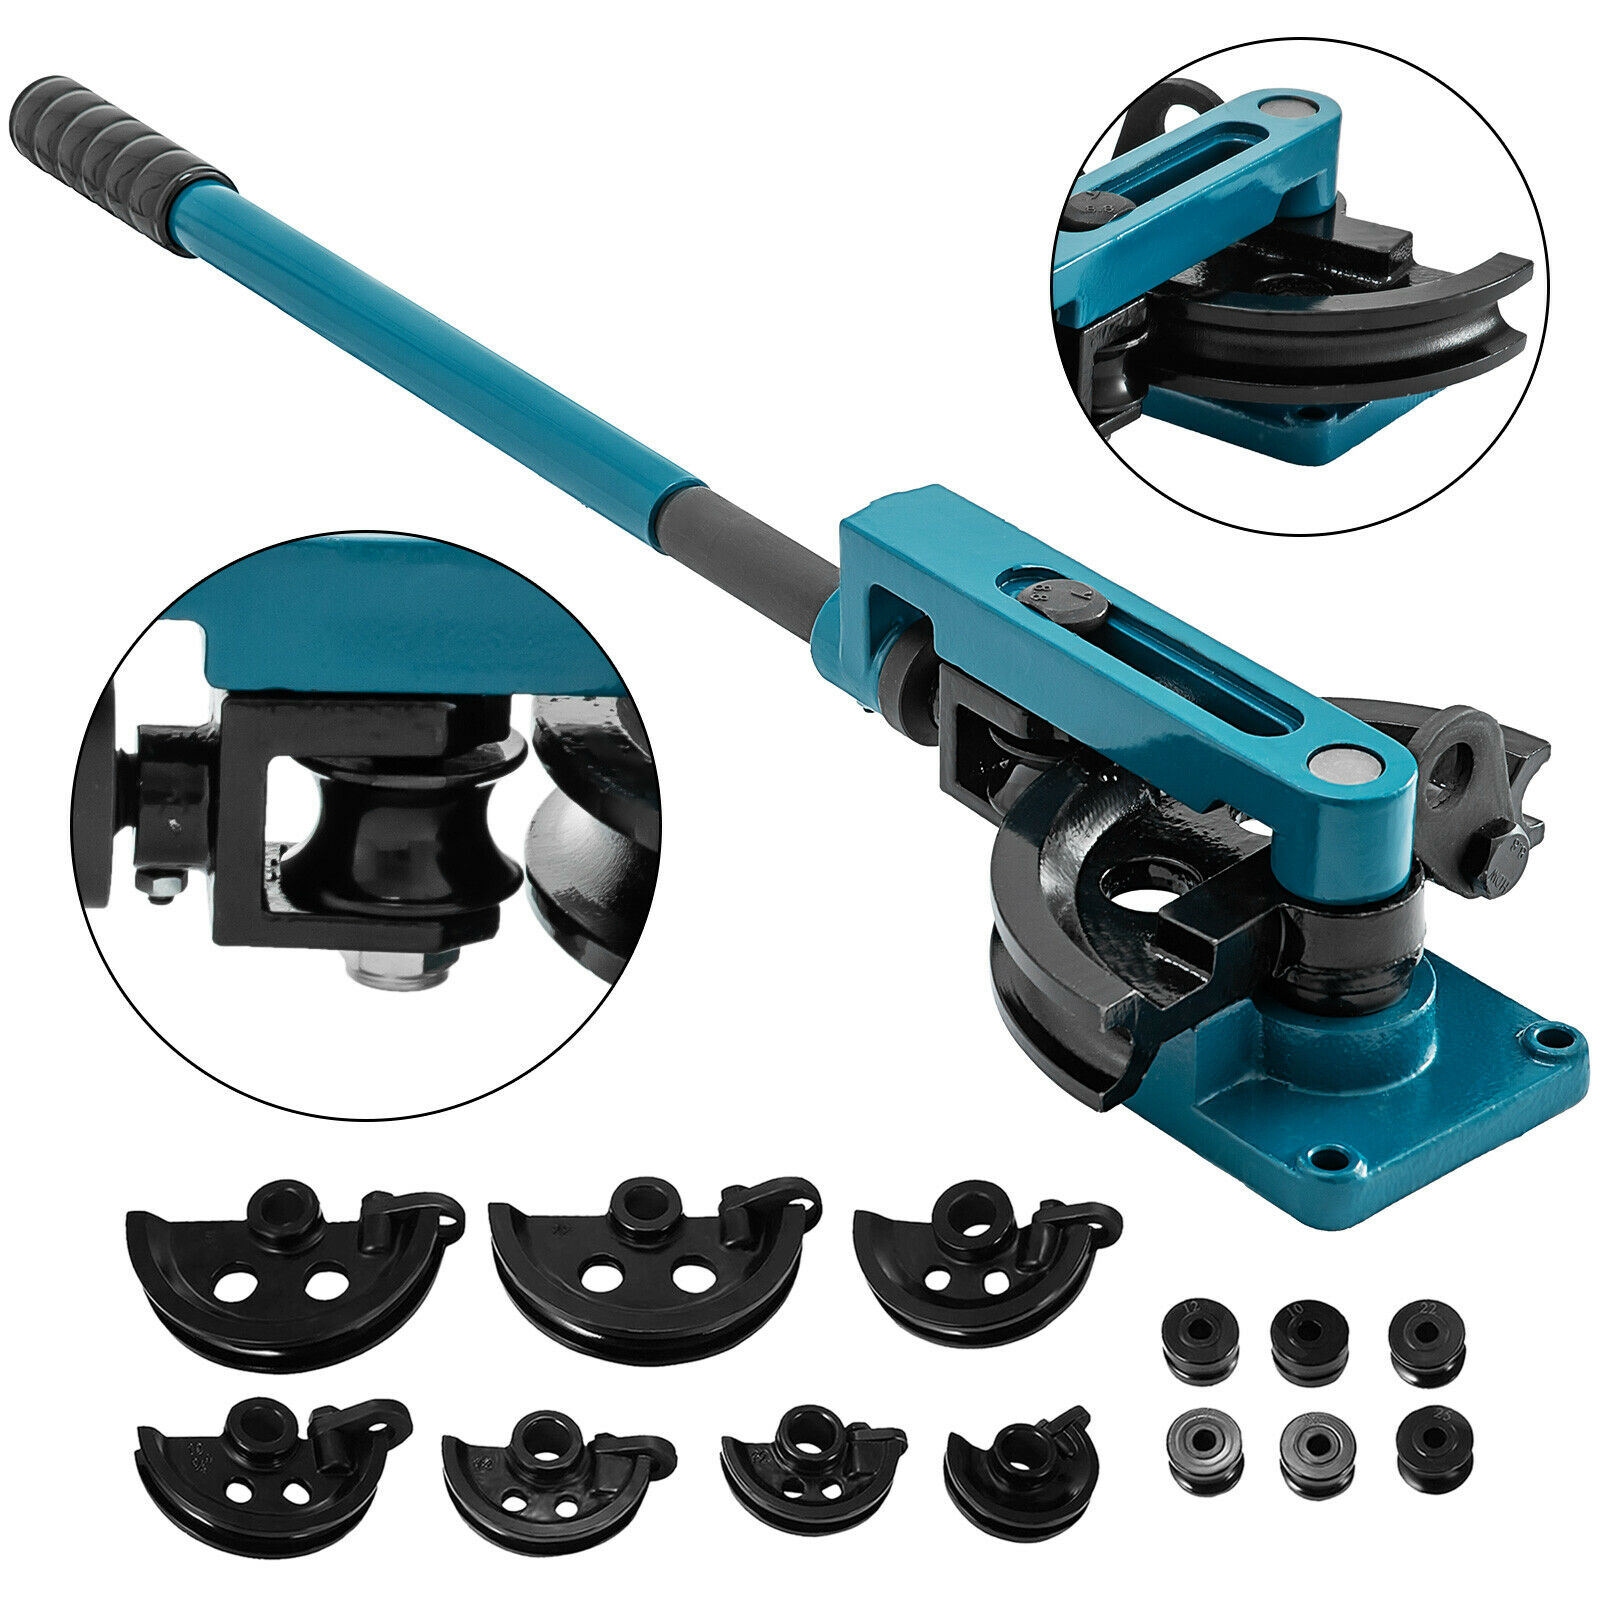 Pipe Bender 3/8 To 1 Inch Pipe Tubing Bender 10-25mm Bending Formers Pipe Bender Set Suitable For Copper Brass Aluminum Stainles